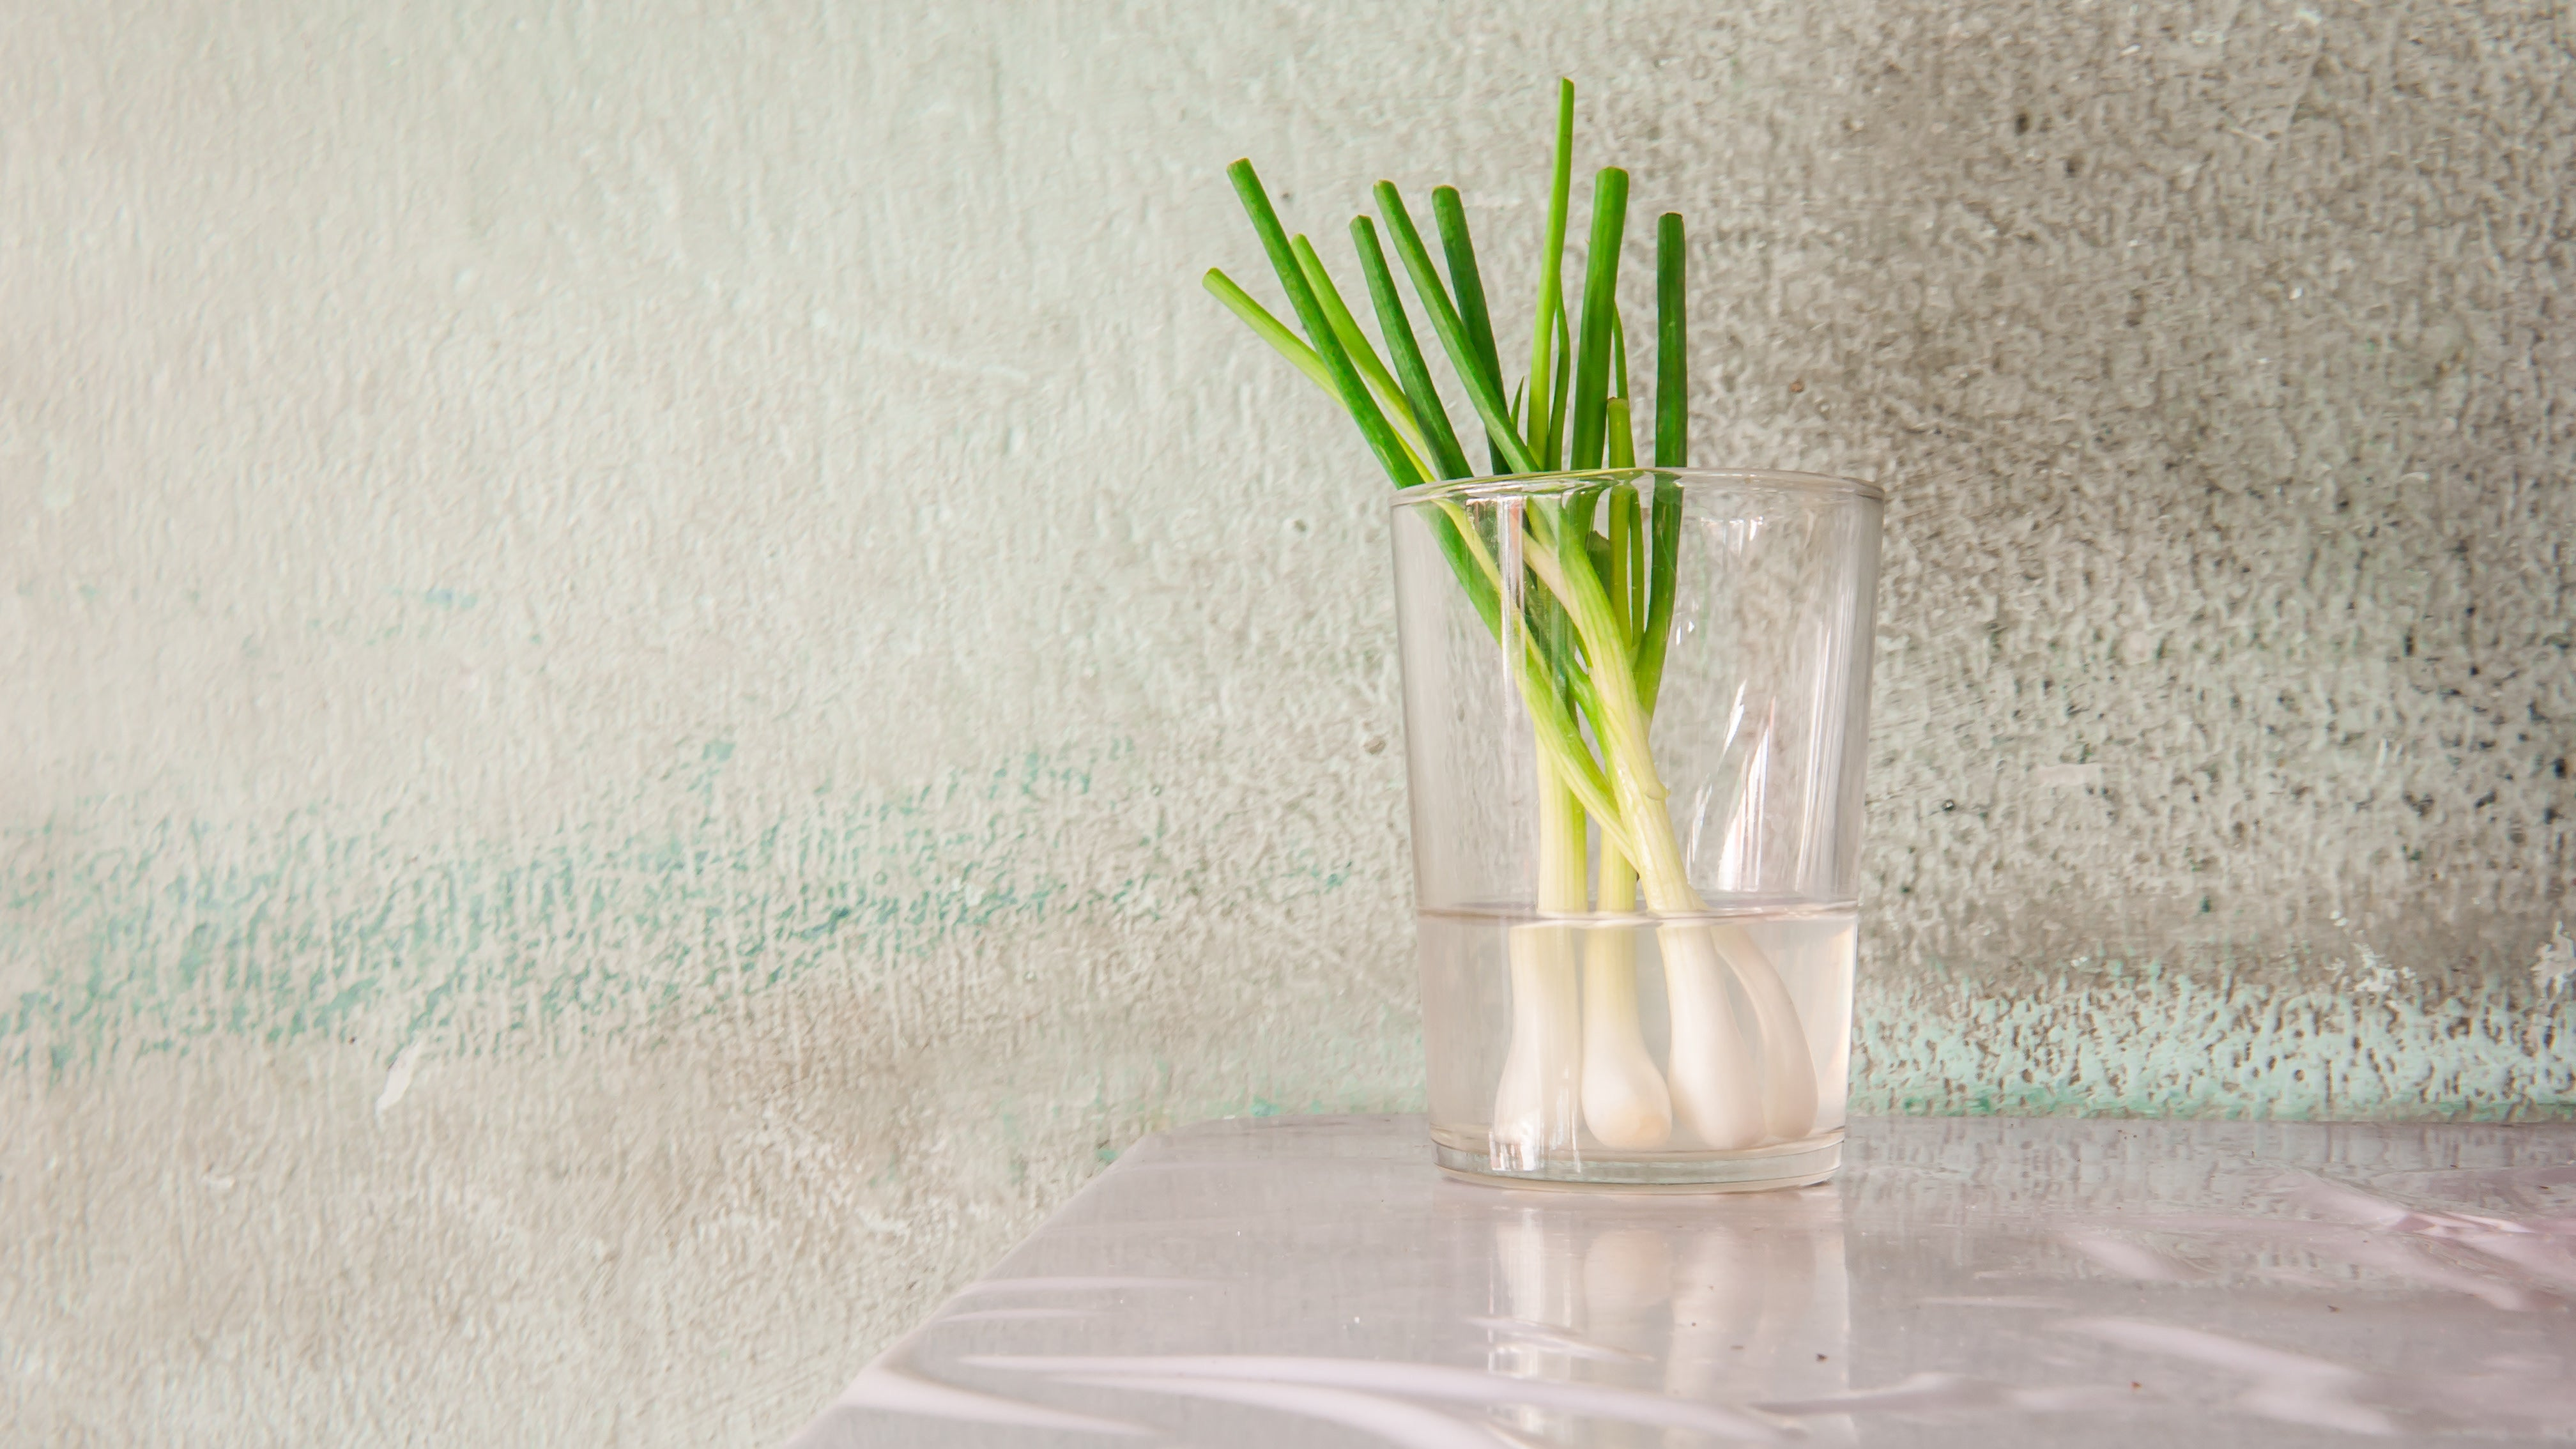 Regrow Green Onions In A Cup Of Water